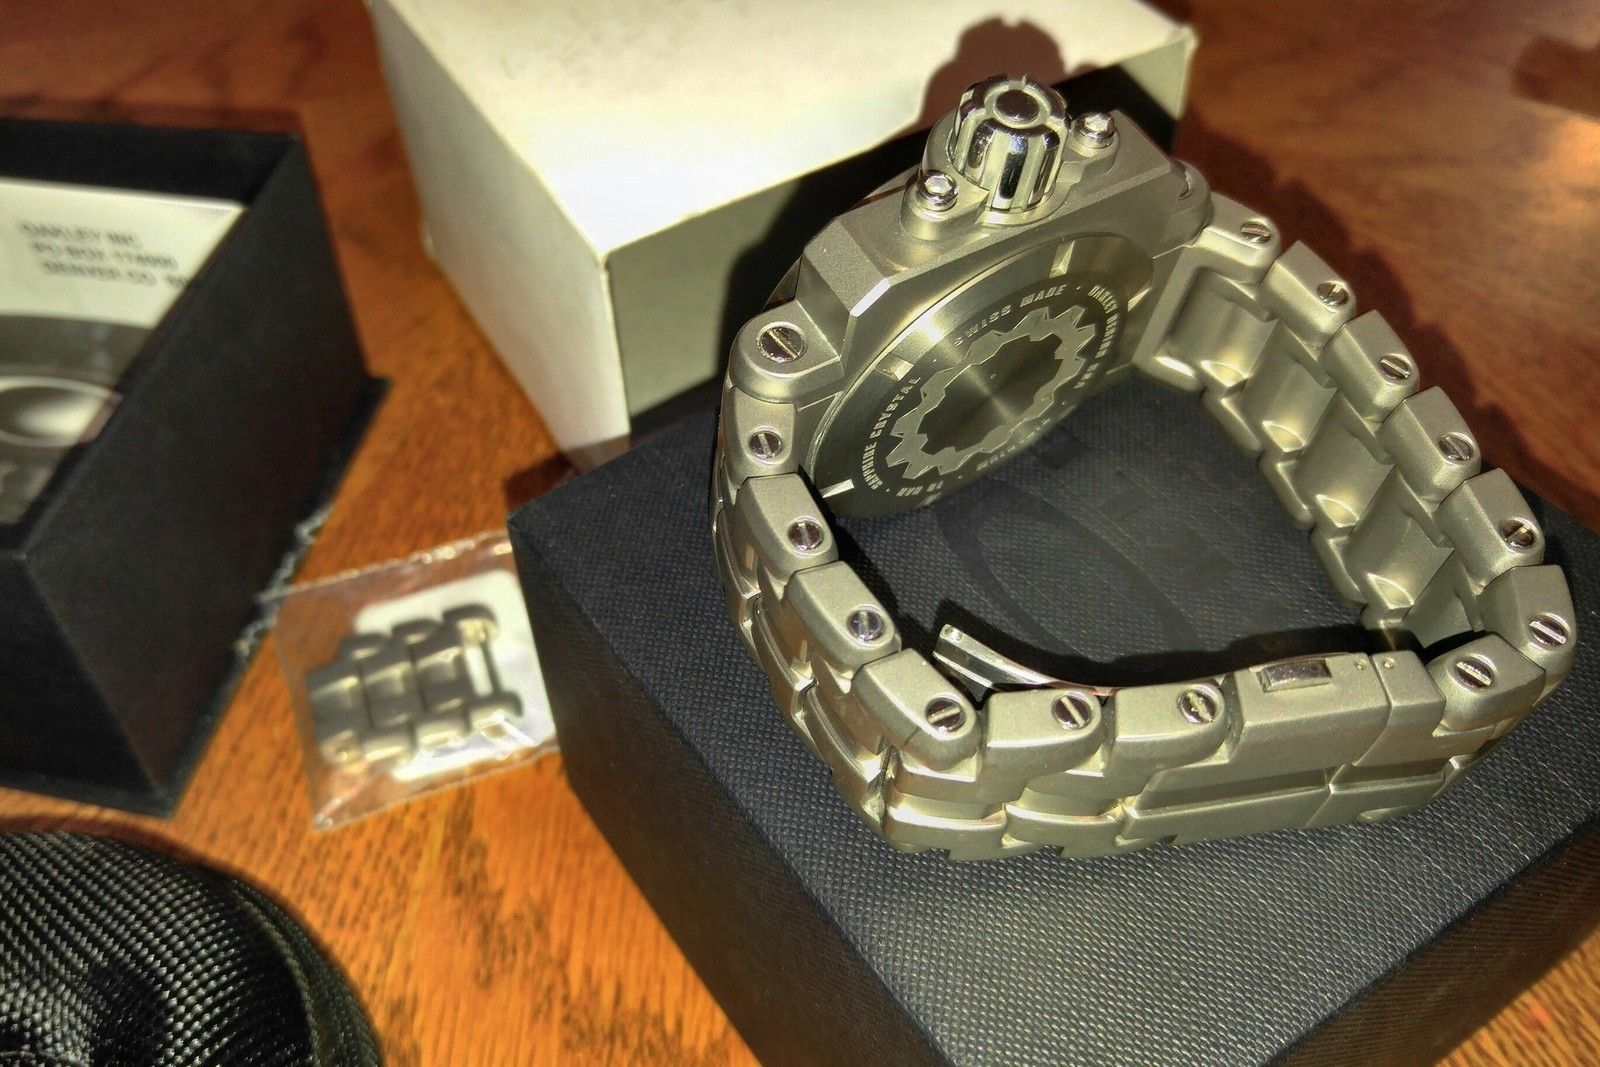 Gearbox with ti band - 20151130_151958-1.jpg